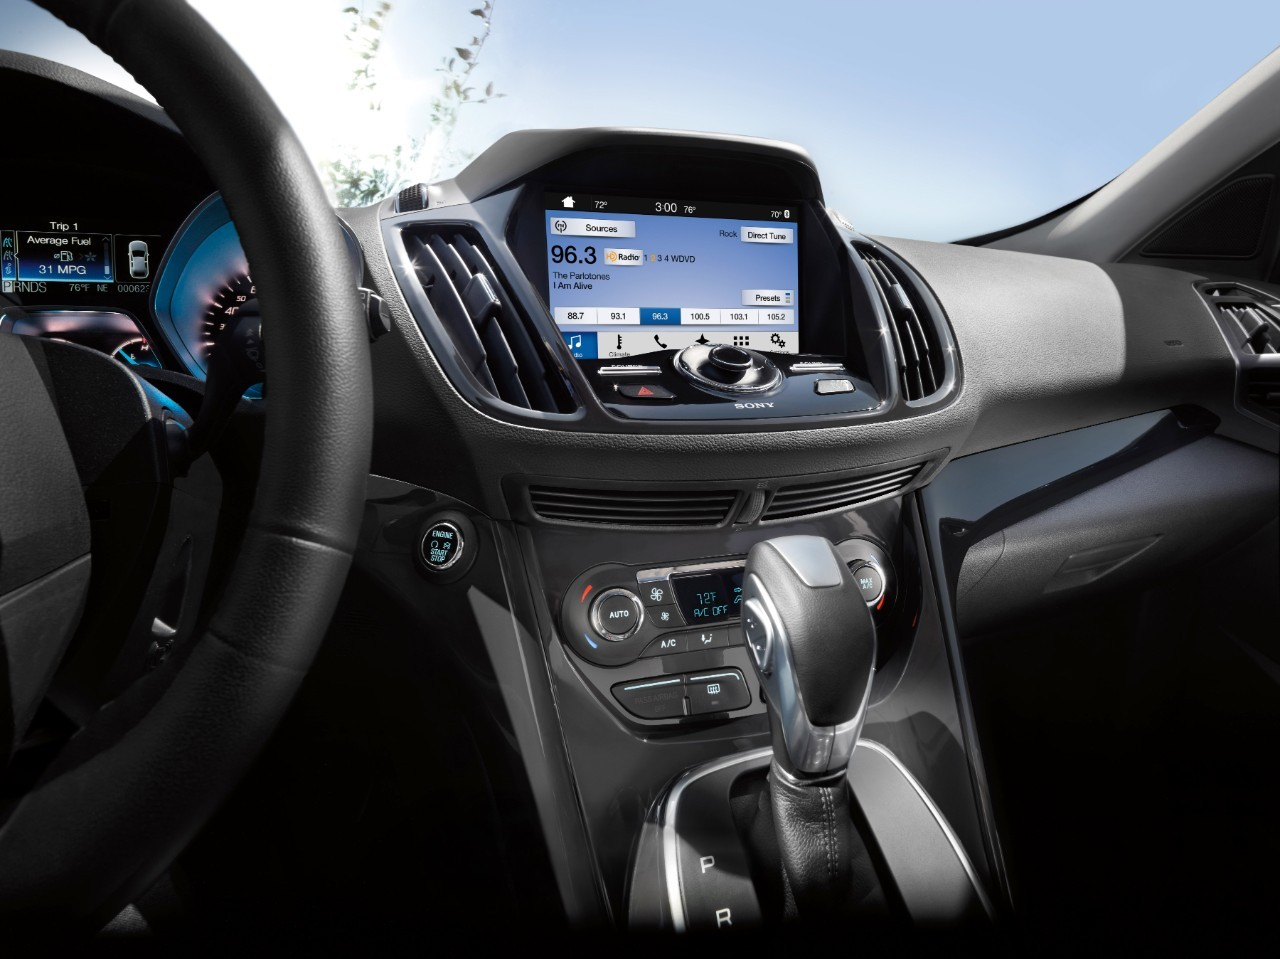 Ford Sync 3 Infotainment To Debut On The 2016 Ford Escape And